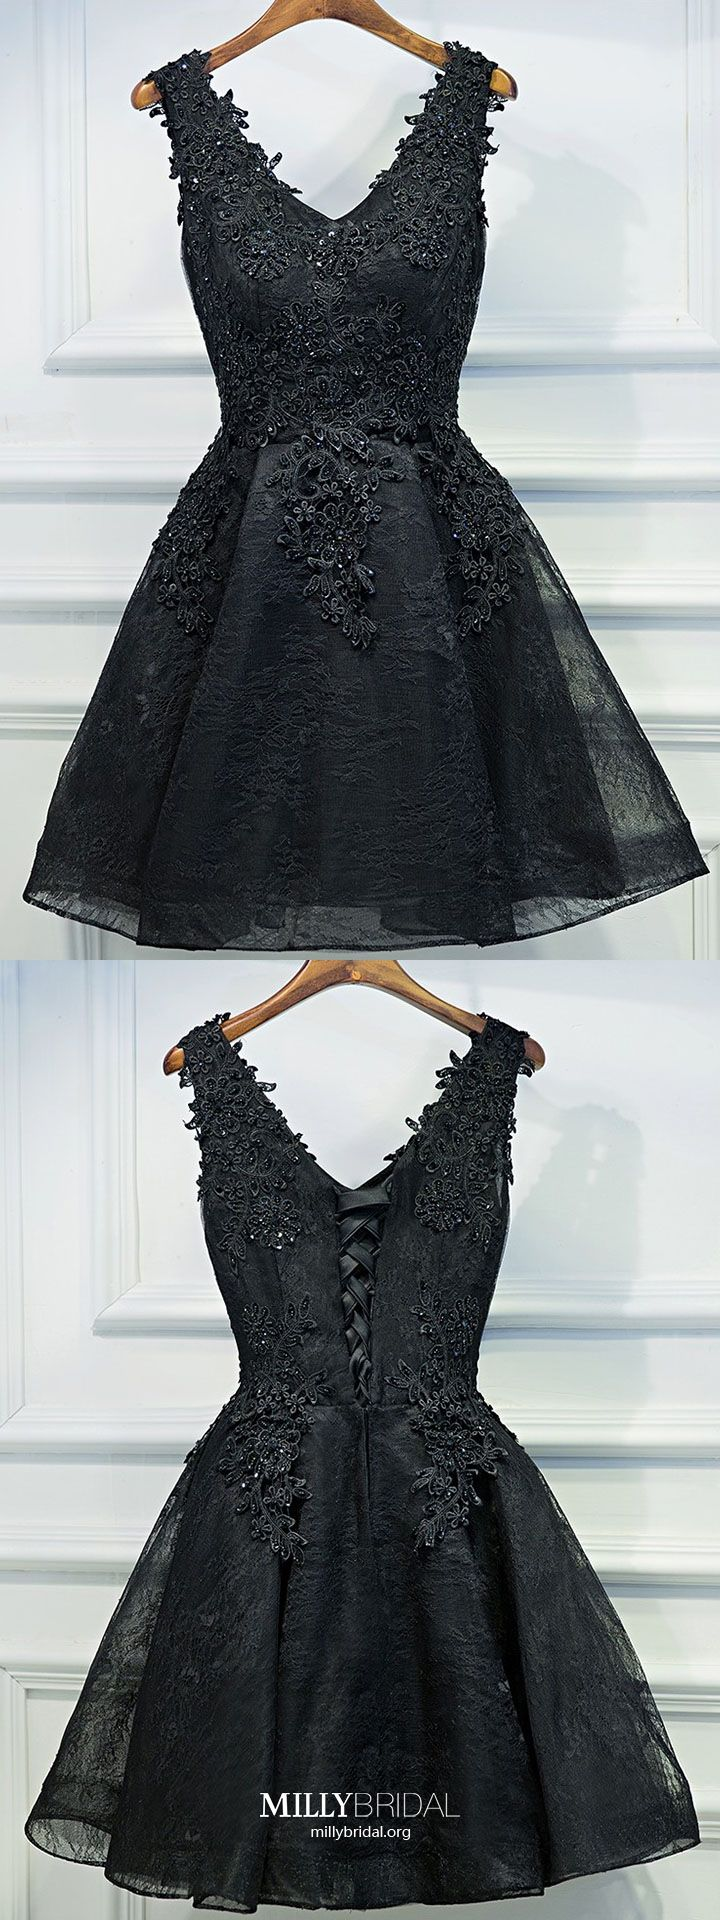 Black homecoming dresses short lace prom dresses for teens modest